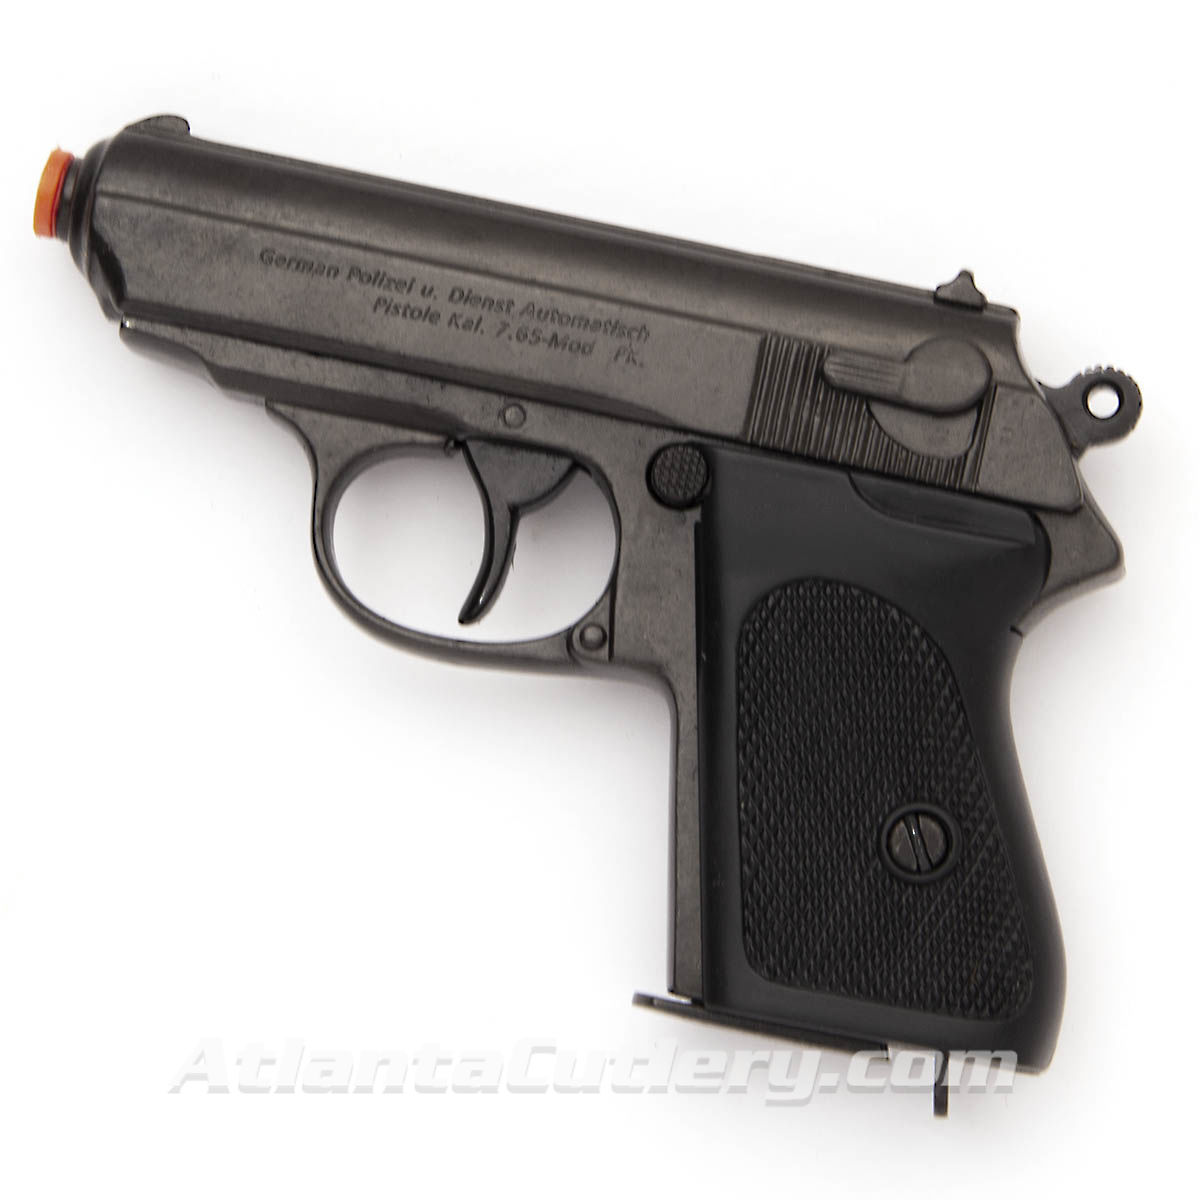 Full Size Replica Non Firing Walther PPK Made from blackened steel with polymer grips